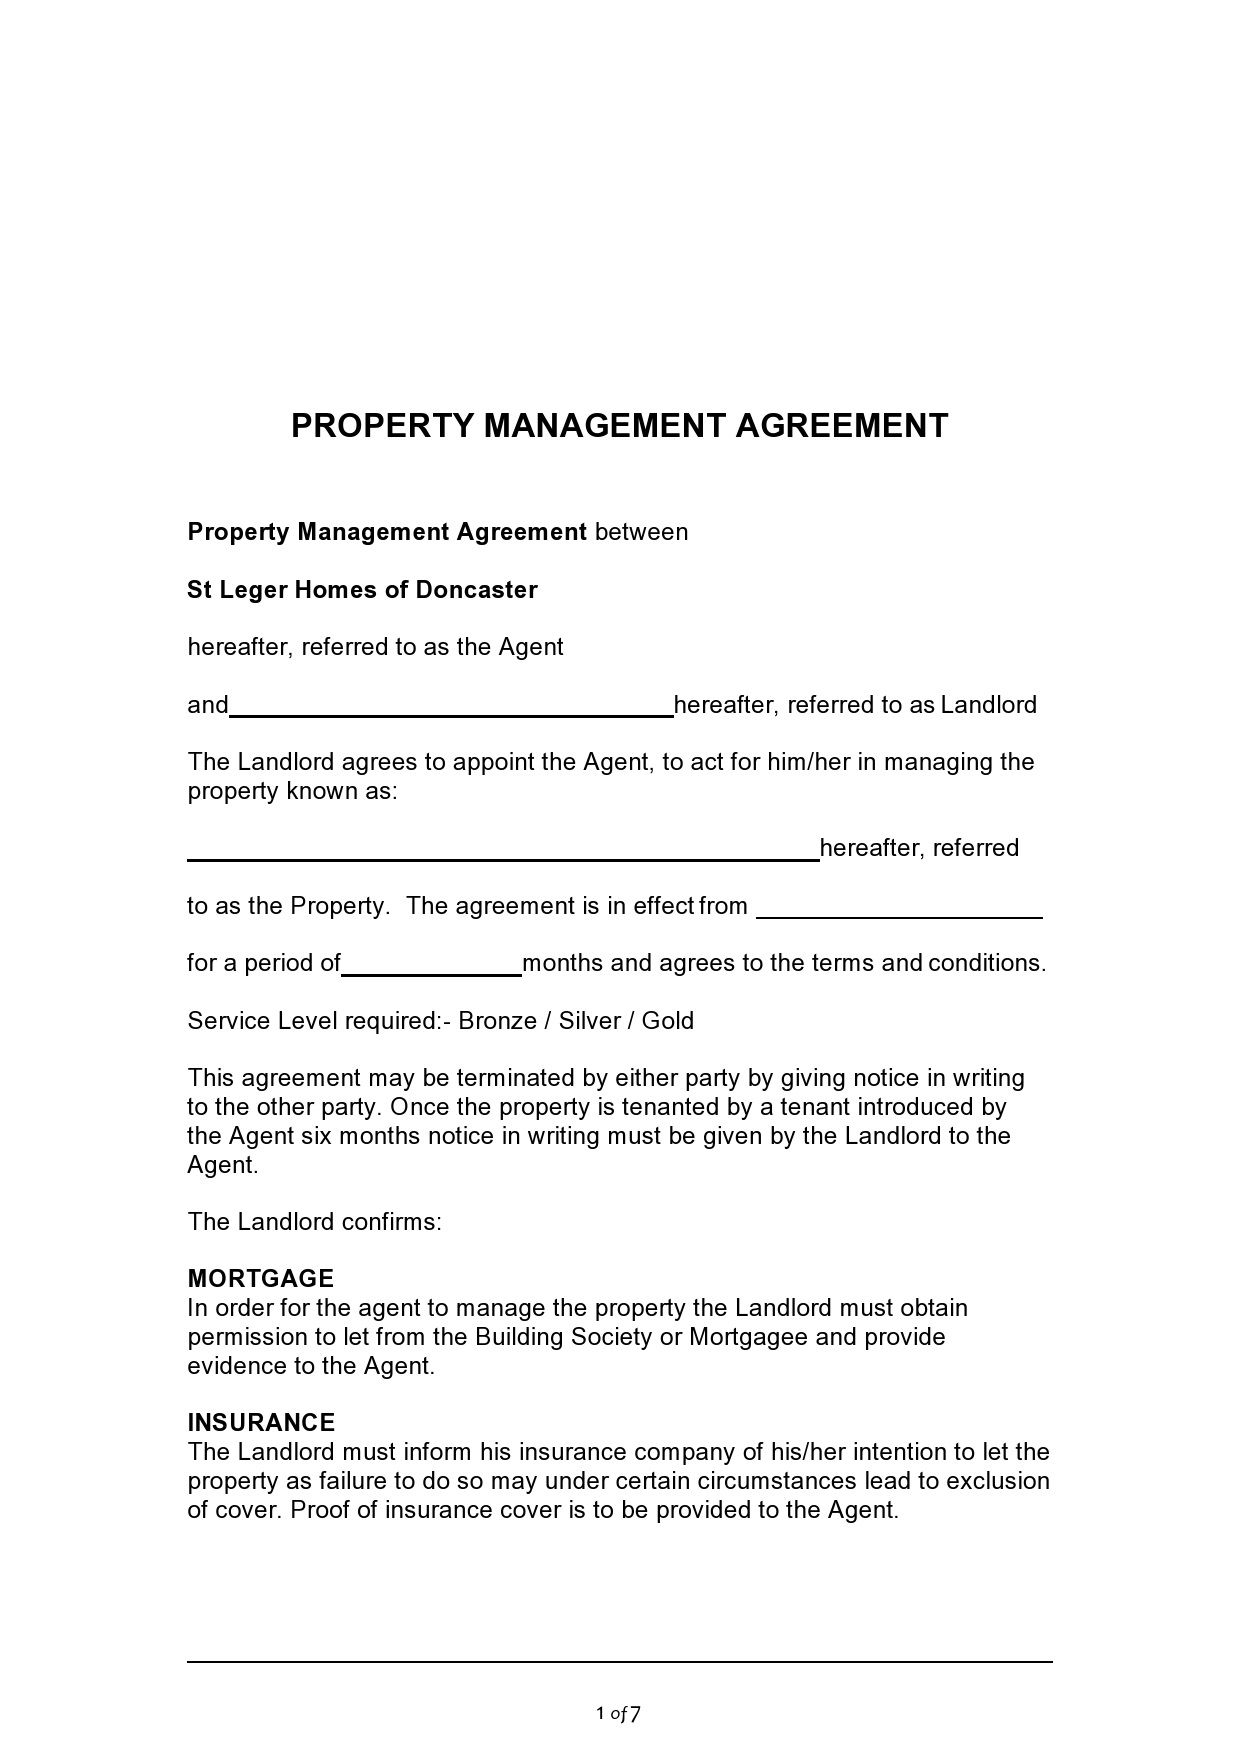 007 Formidable Property Management Agreement Template Ontario Highest Clarity  ContractFull